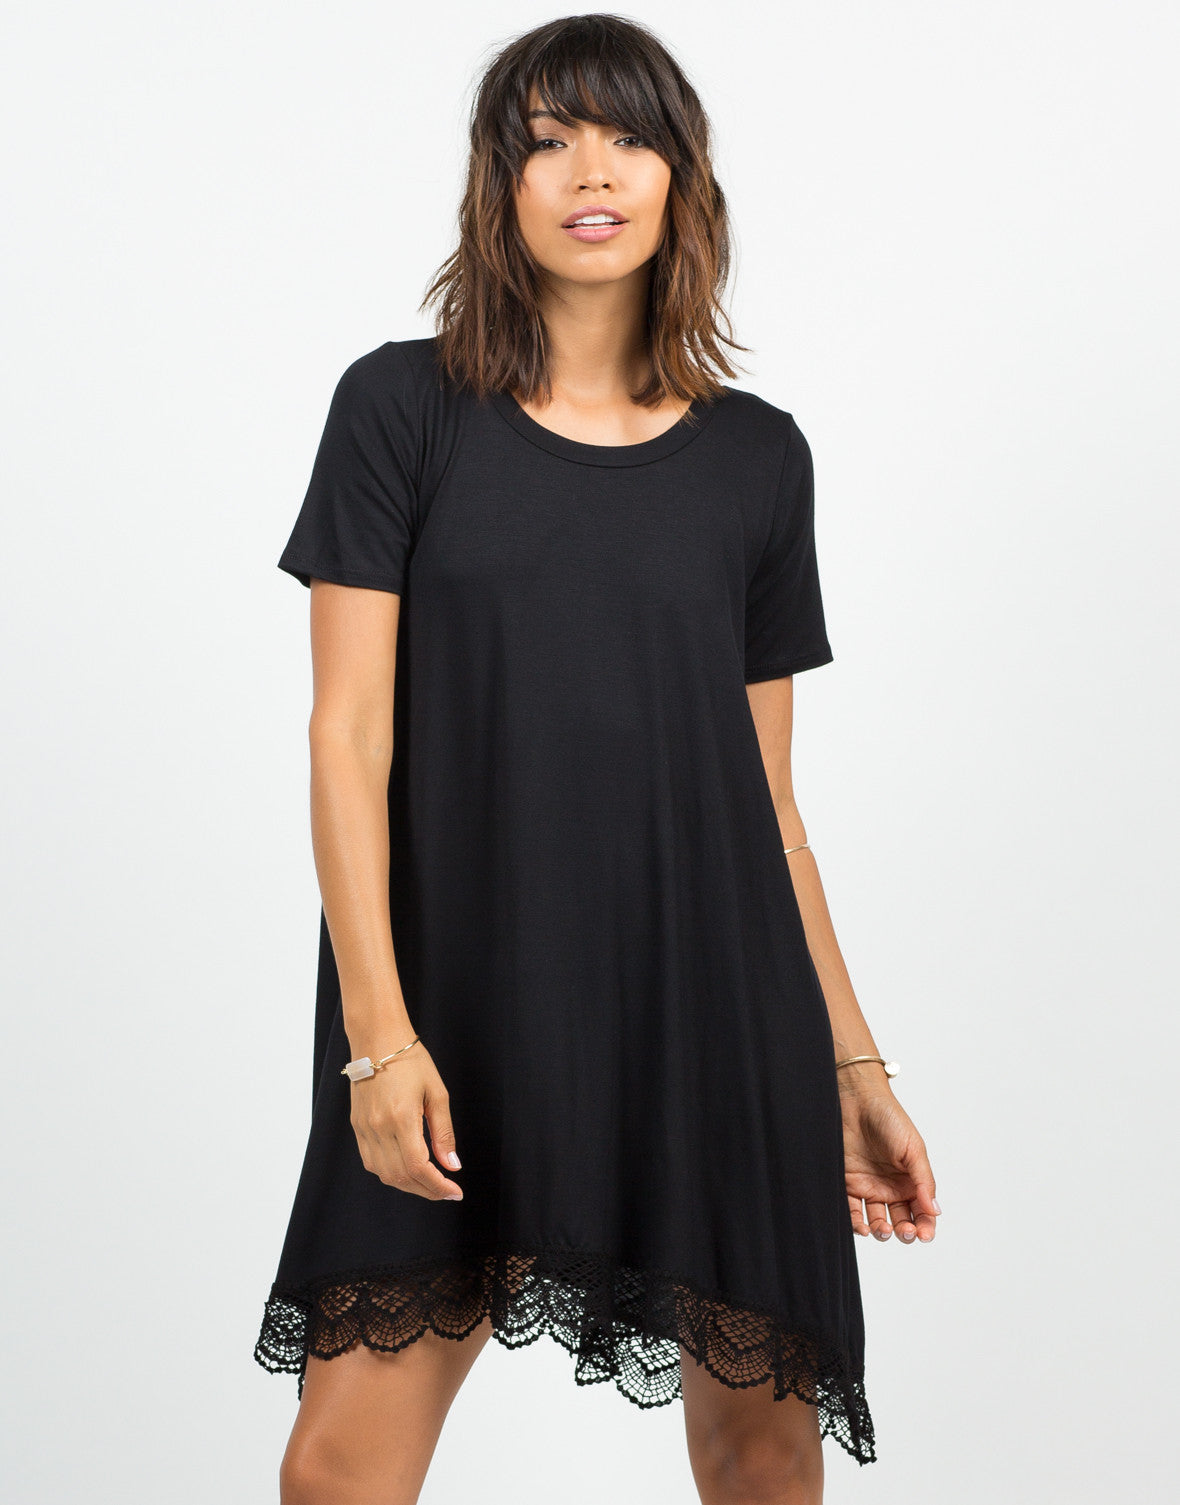 Front View of Crochet T-Shirt Dress